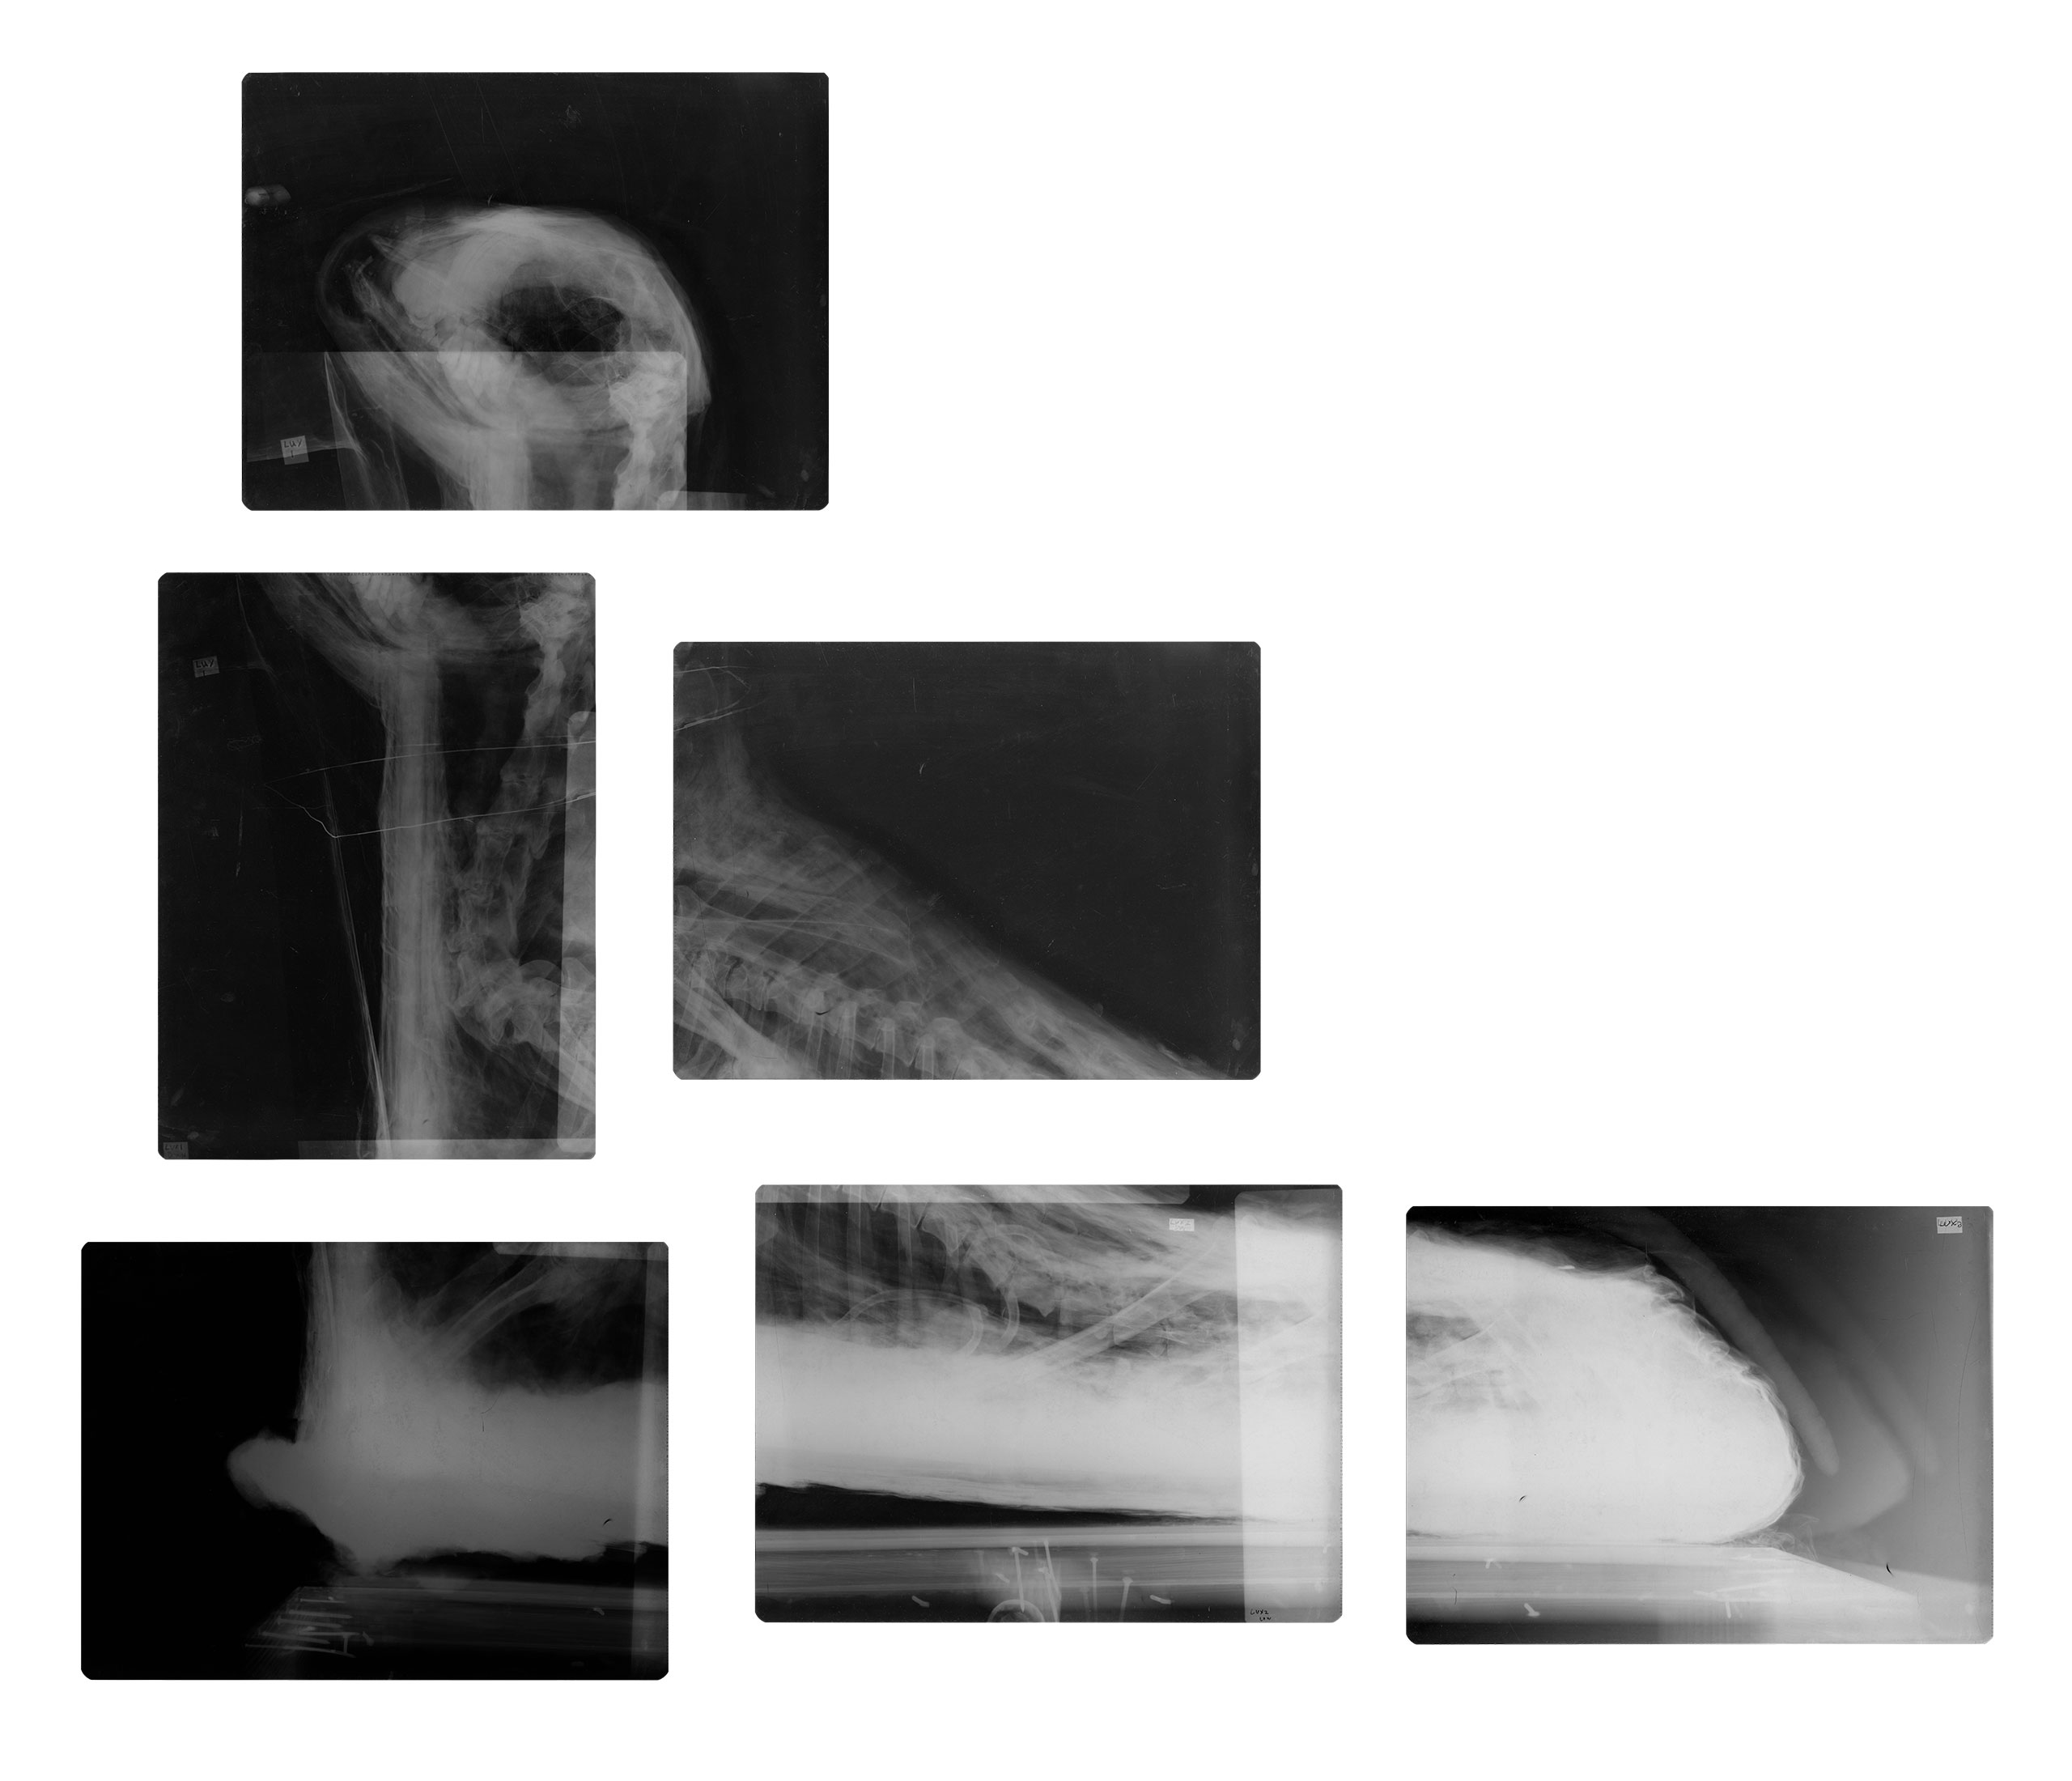 x-ray of a ram mummy in Egypt